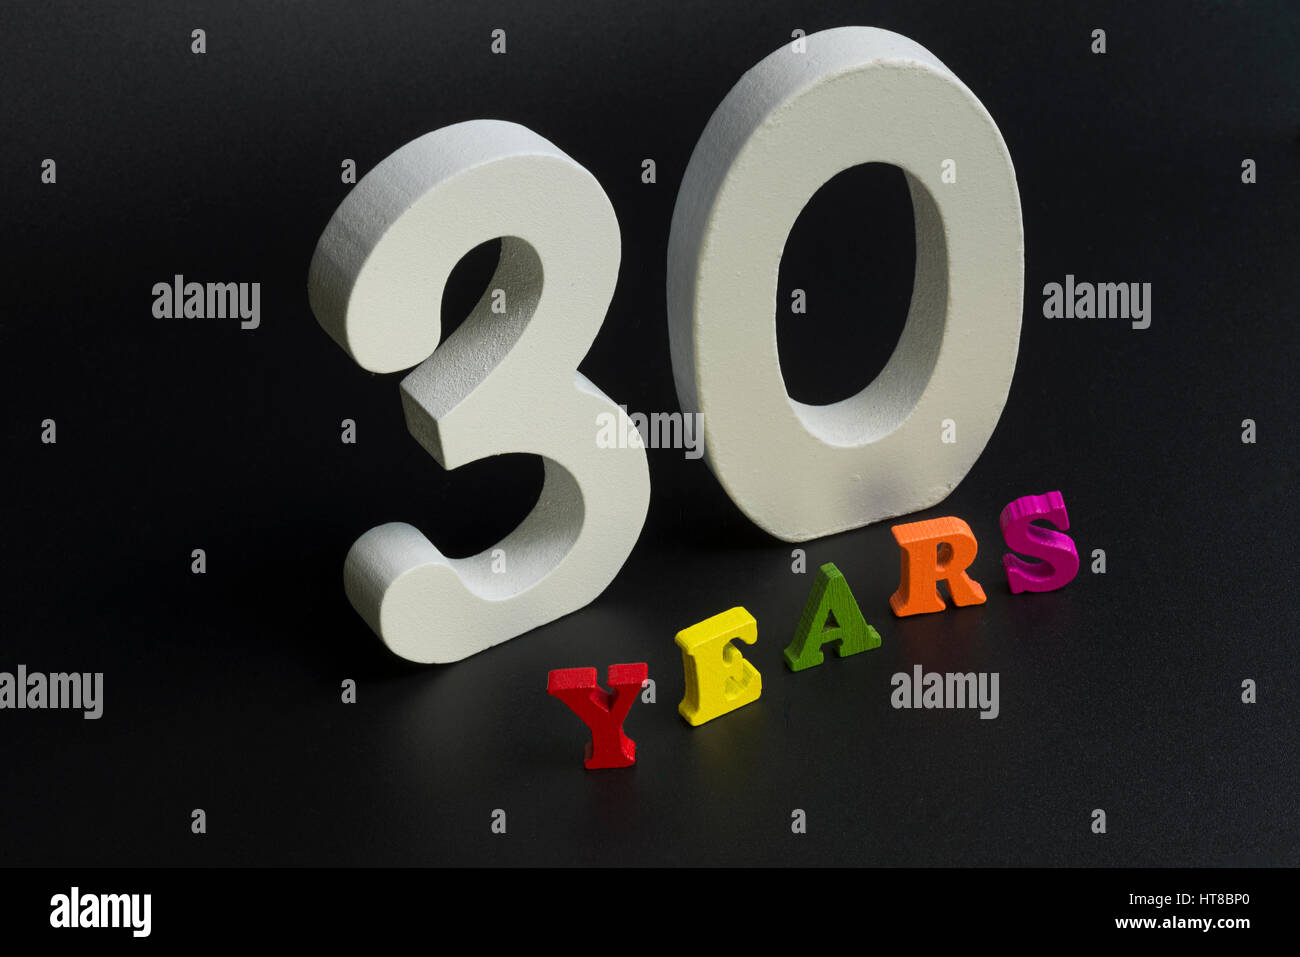 Thirty years of large white numerals on a black background. Stock Photo